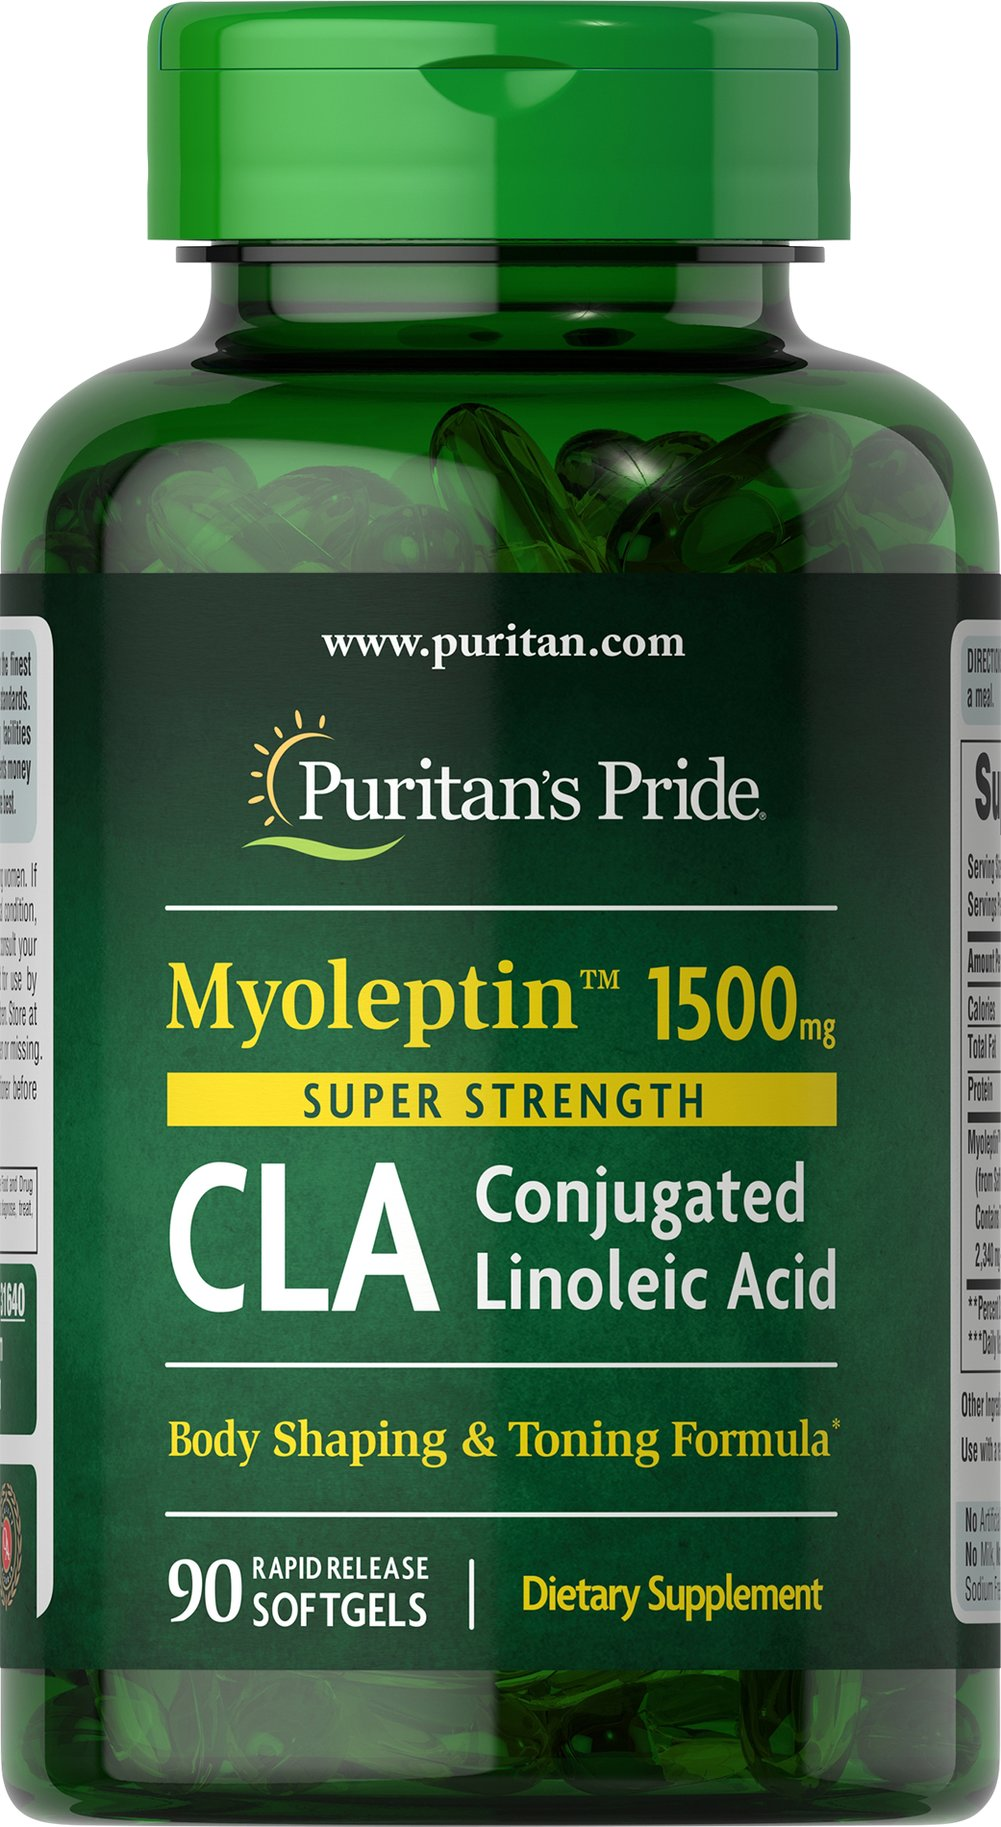 Puritan's Pride Super Strength Myo-Leptin? ; CLA 1500 mg-90 Softgels has been used for decades for those dieting the healthy way and even the not so healthy way